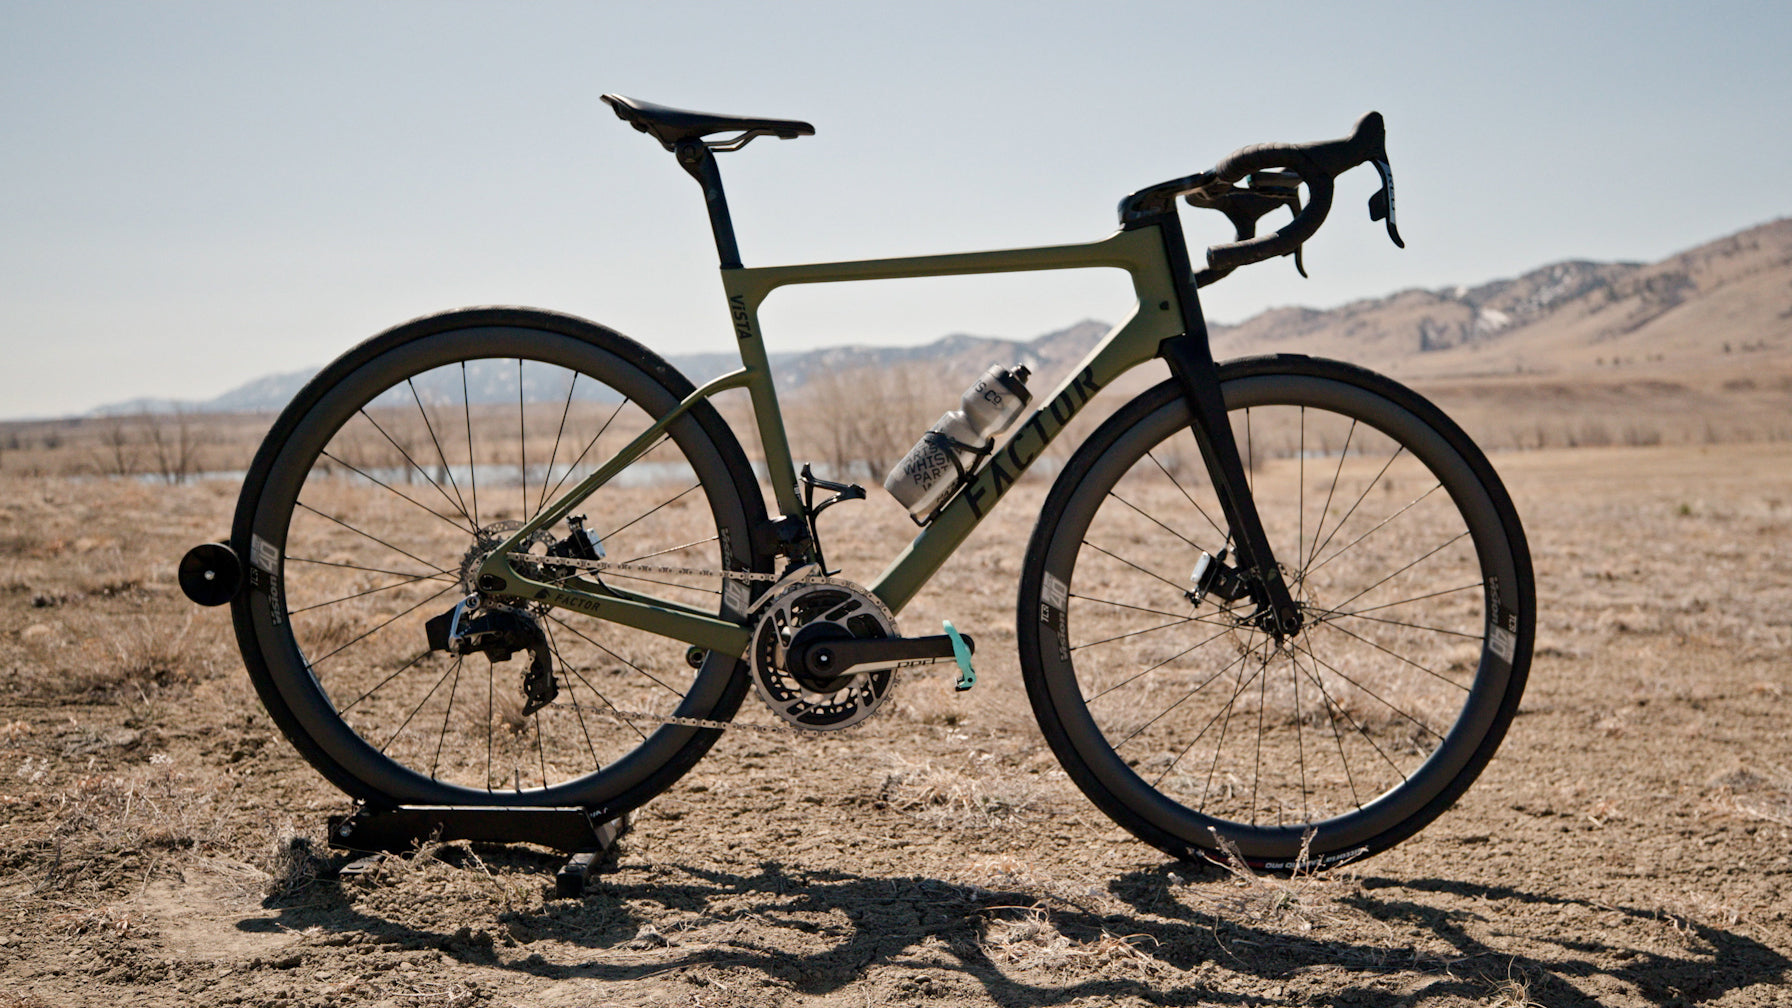 2020 Factor Vista review: The ultimate all-road bike